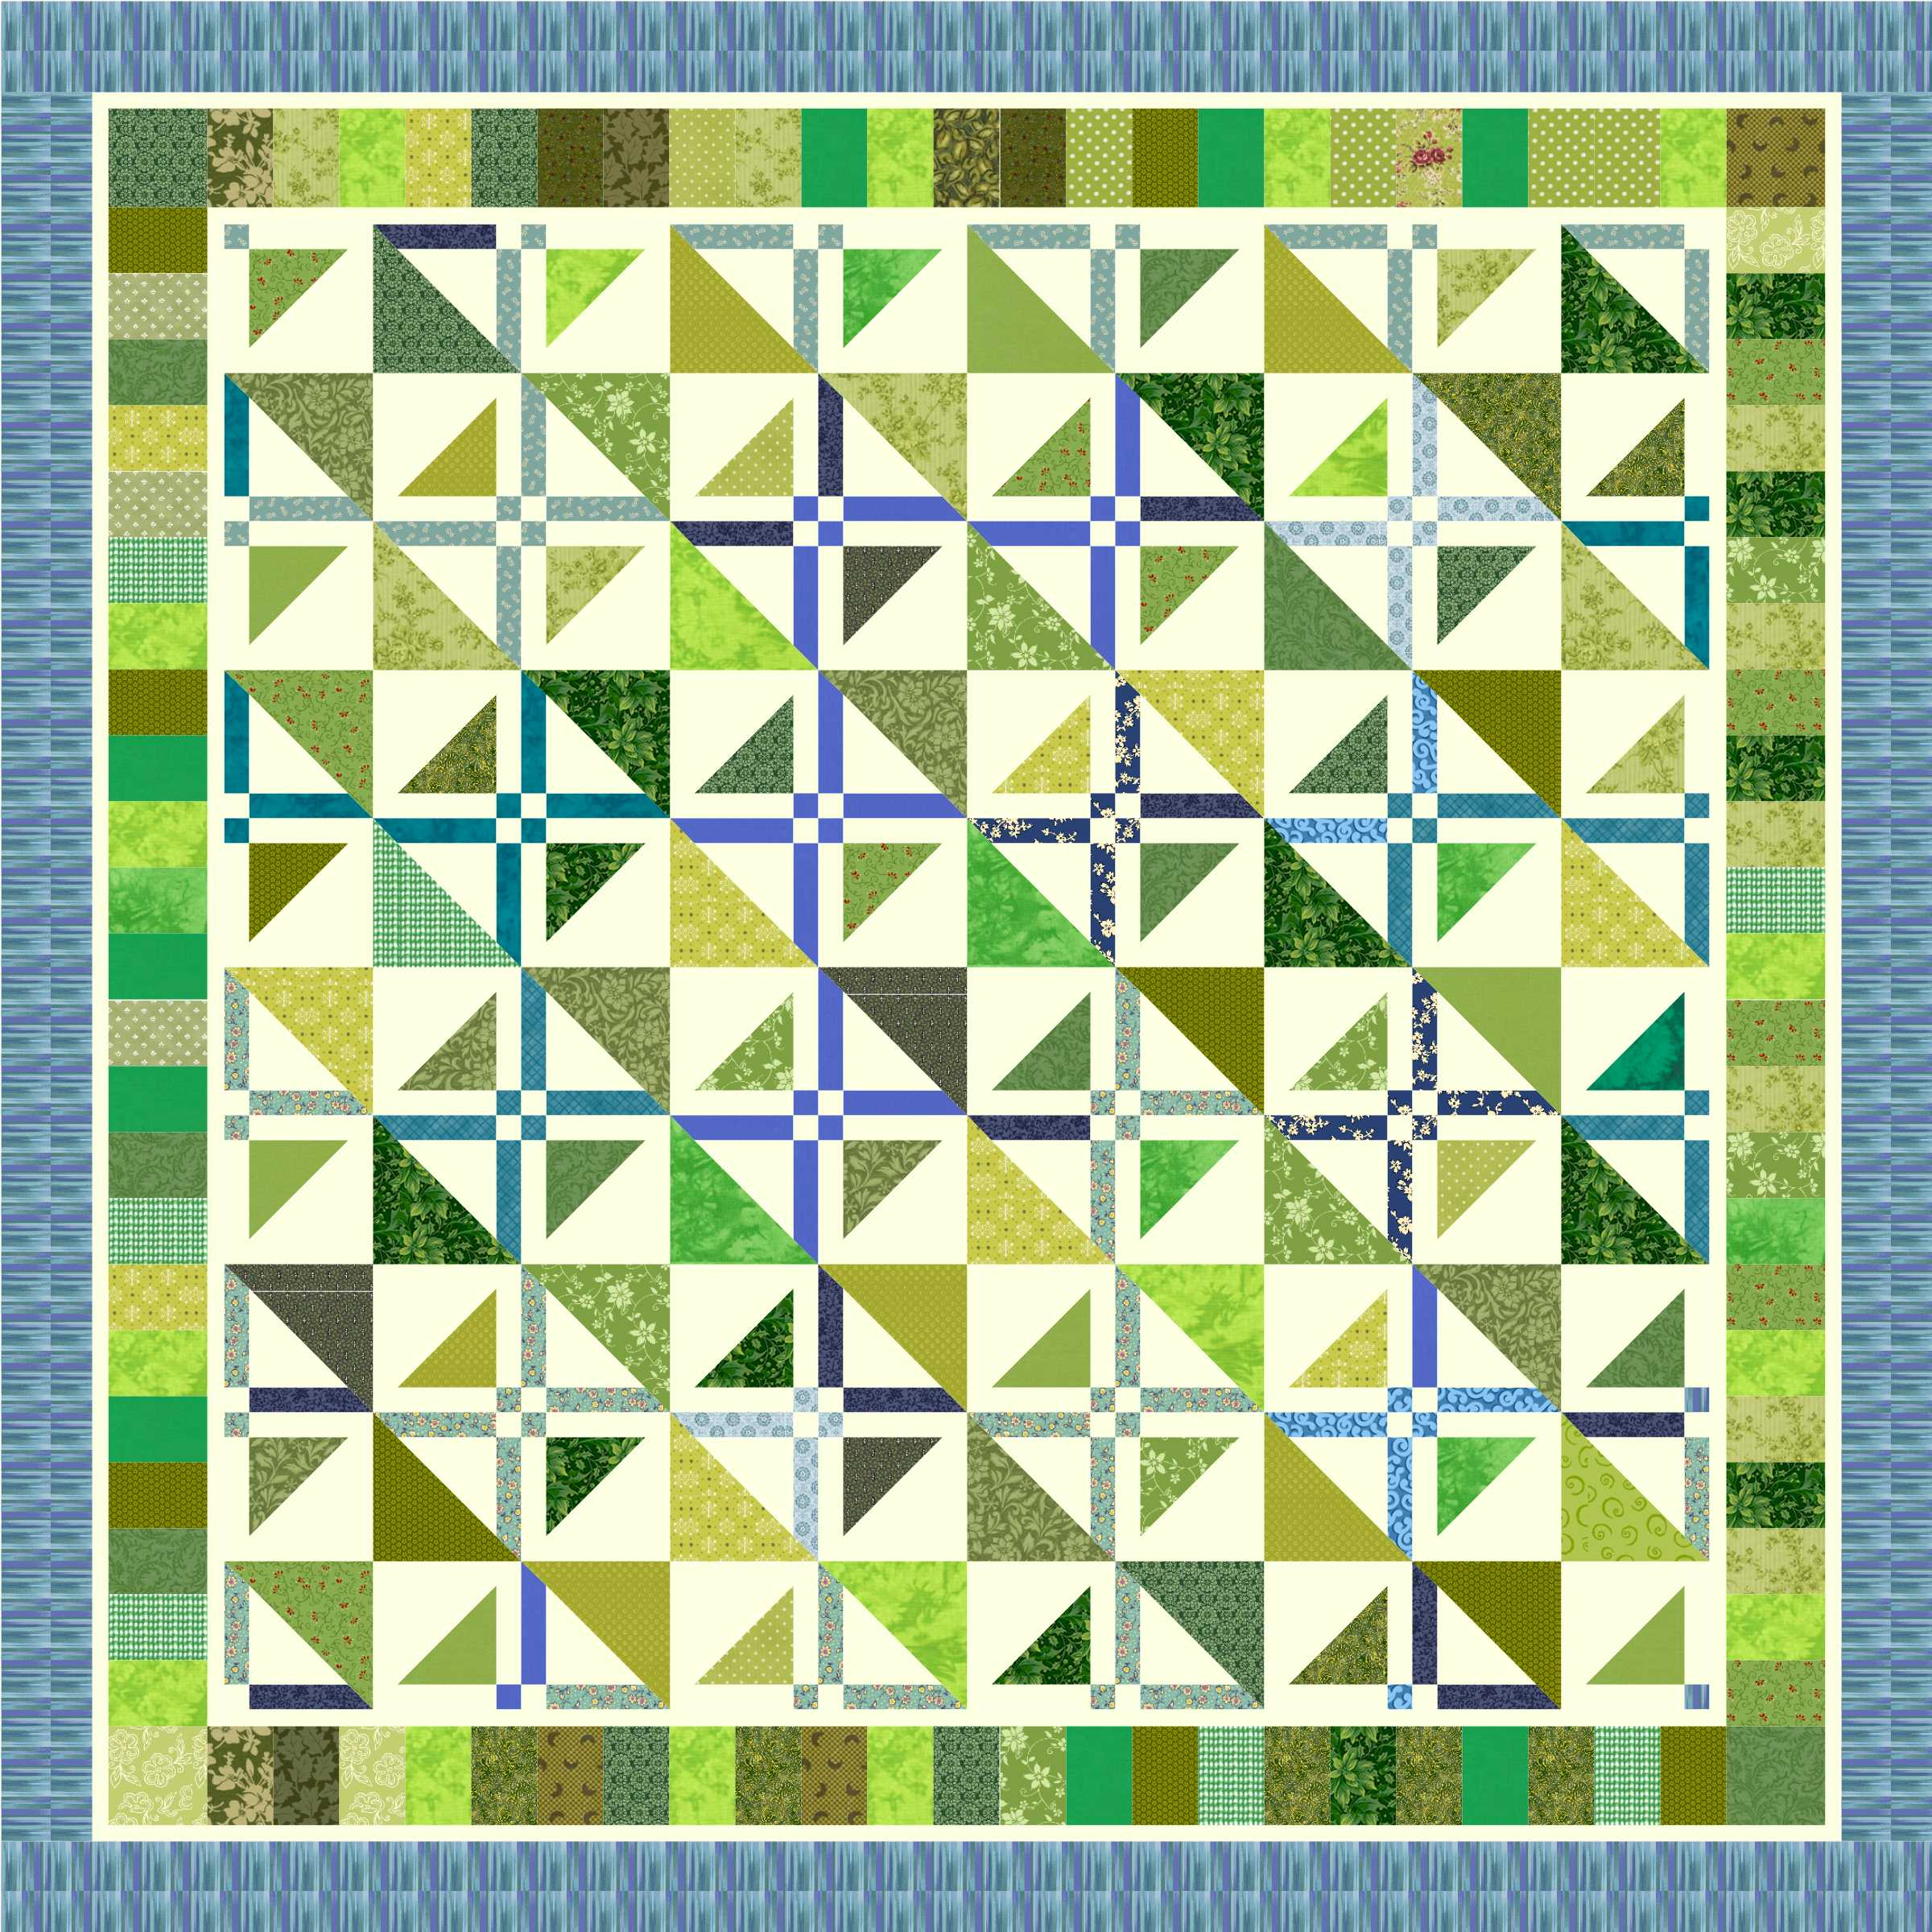 patchwork gardens american calendar asp and better homes find quilting detail vintage quilt